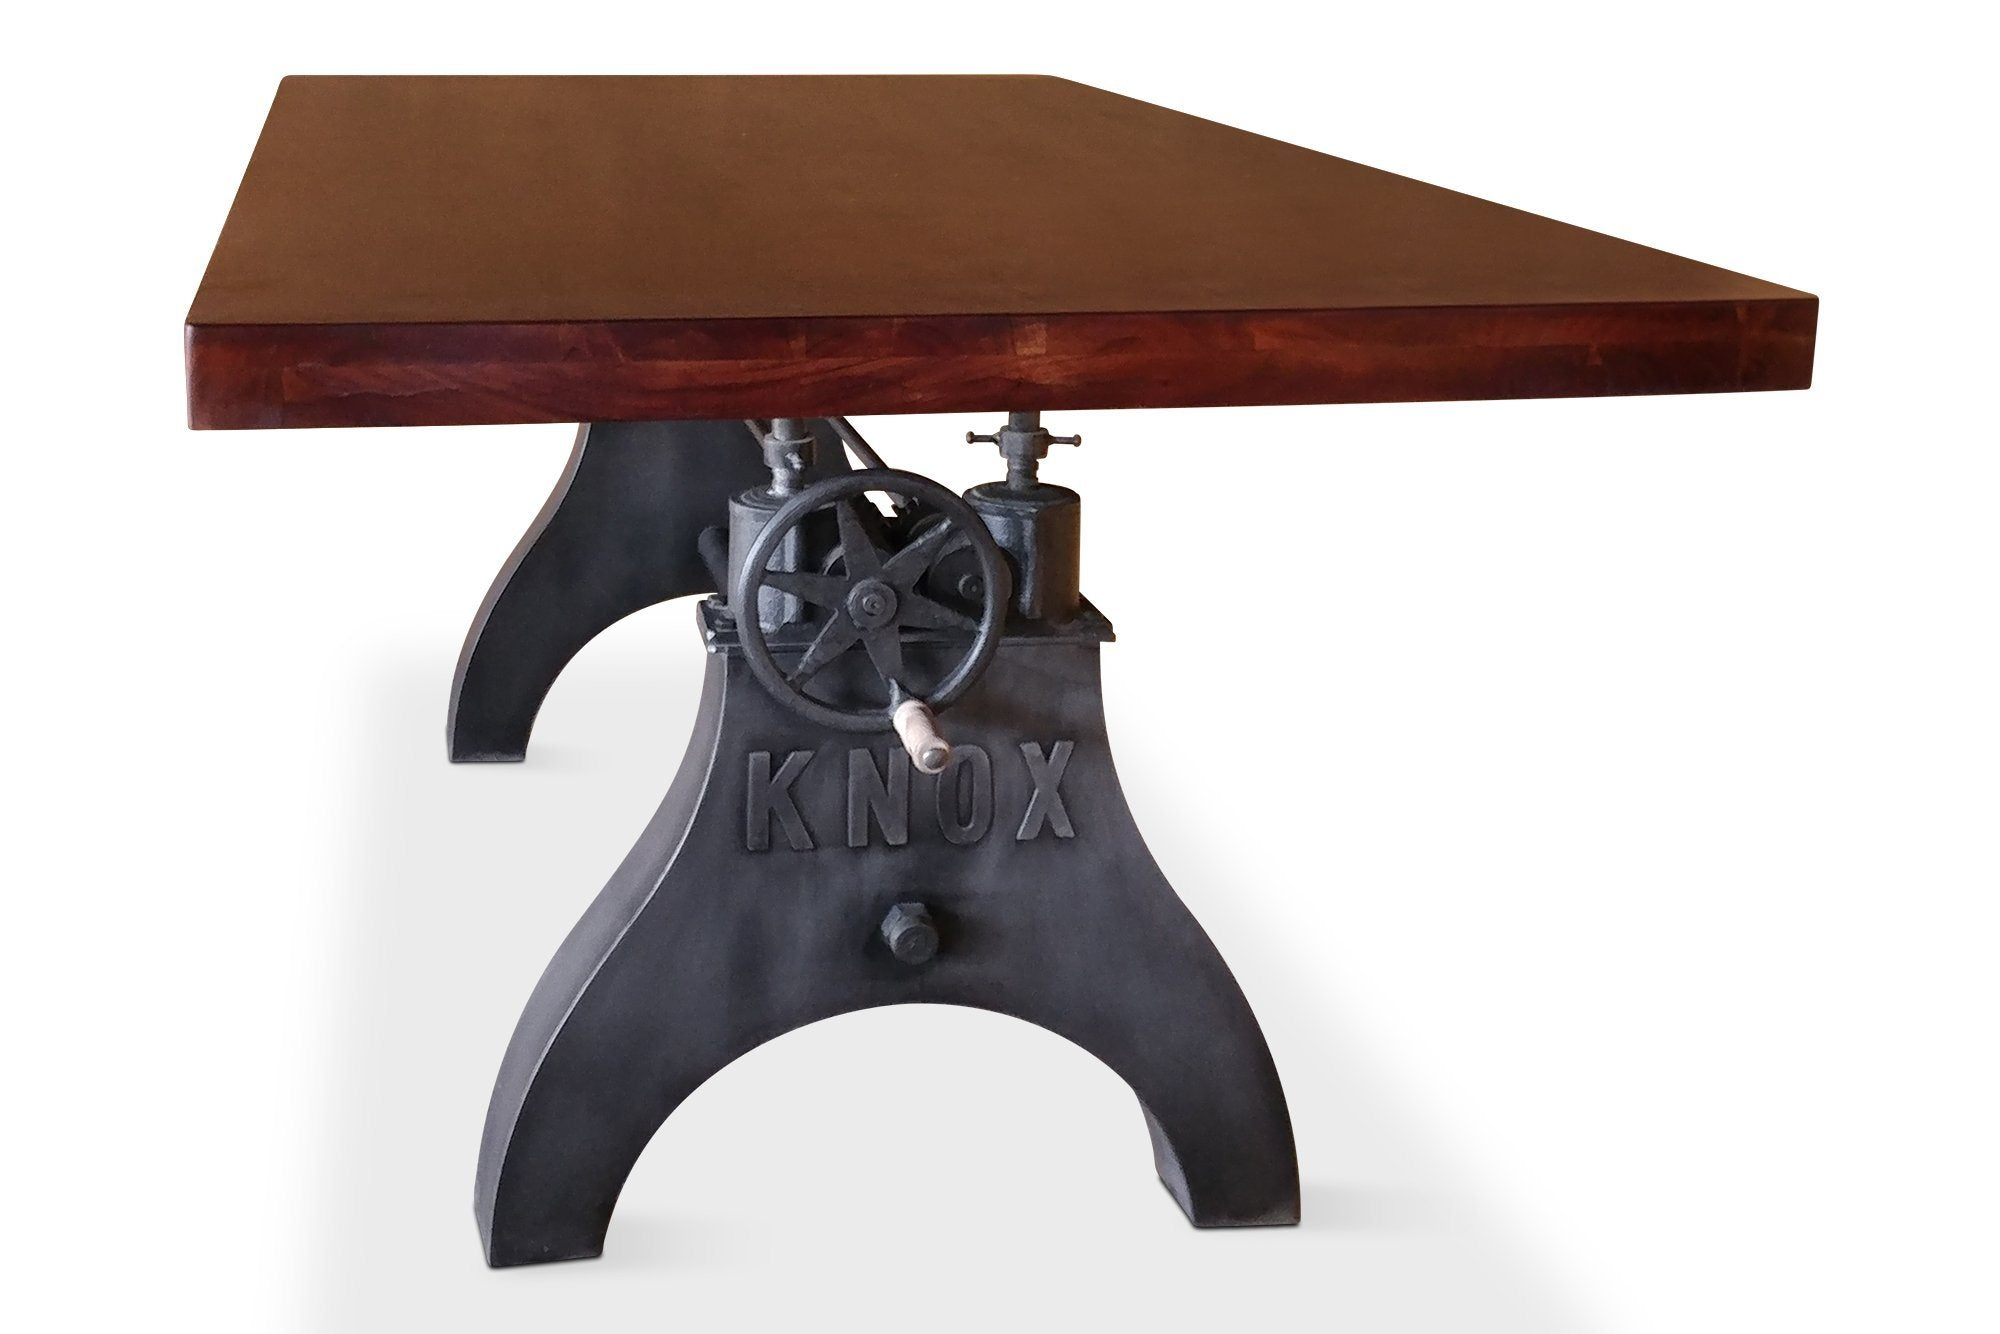 Knox Adjustable Dining Table Iron Crank Industrial Base Provincial